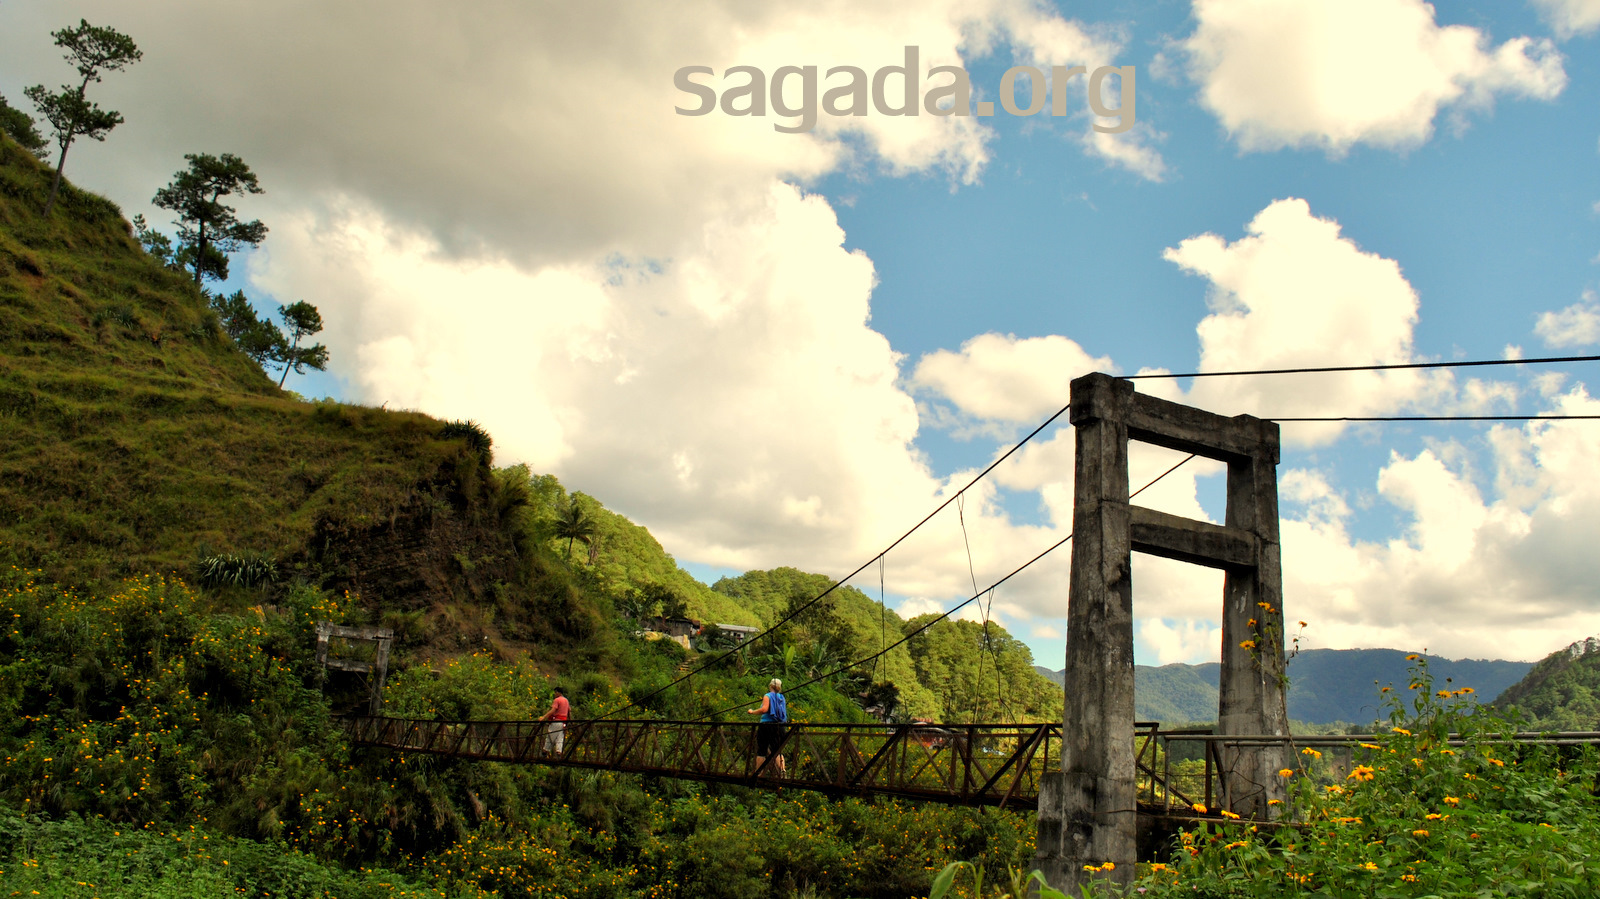 Ankileng-Sagada-bridge-2011-November-19c